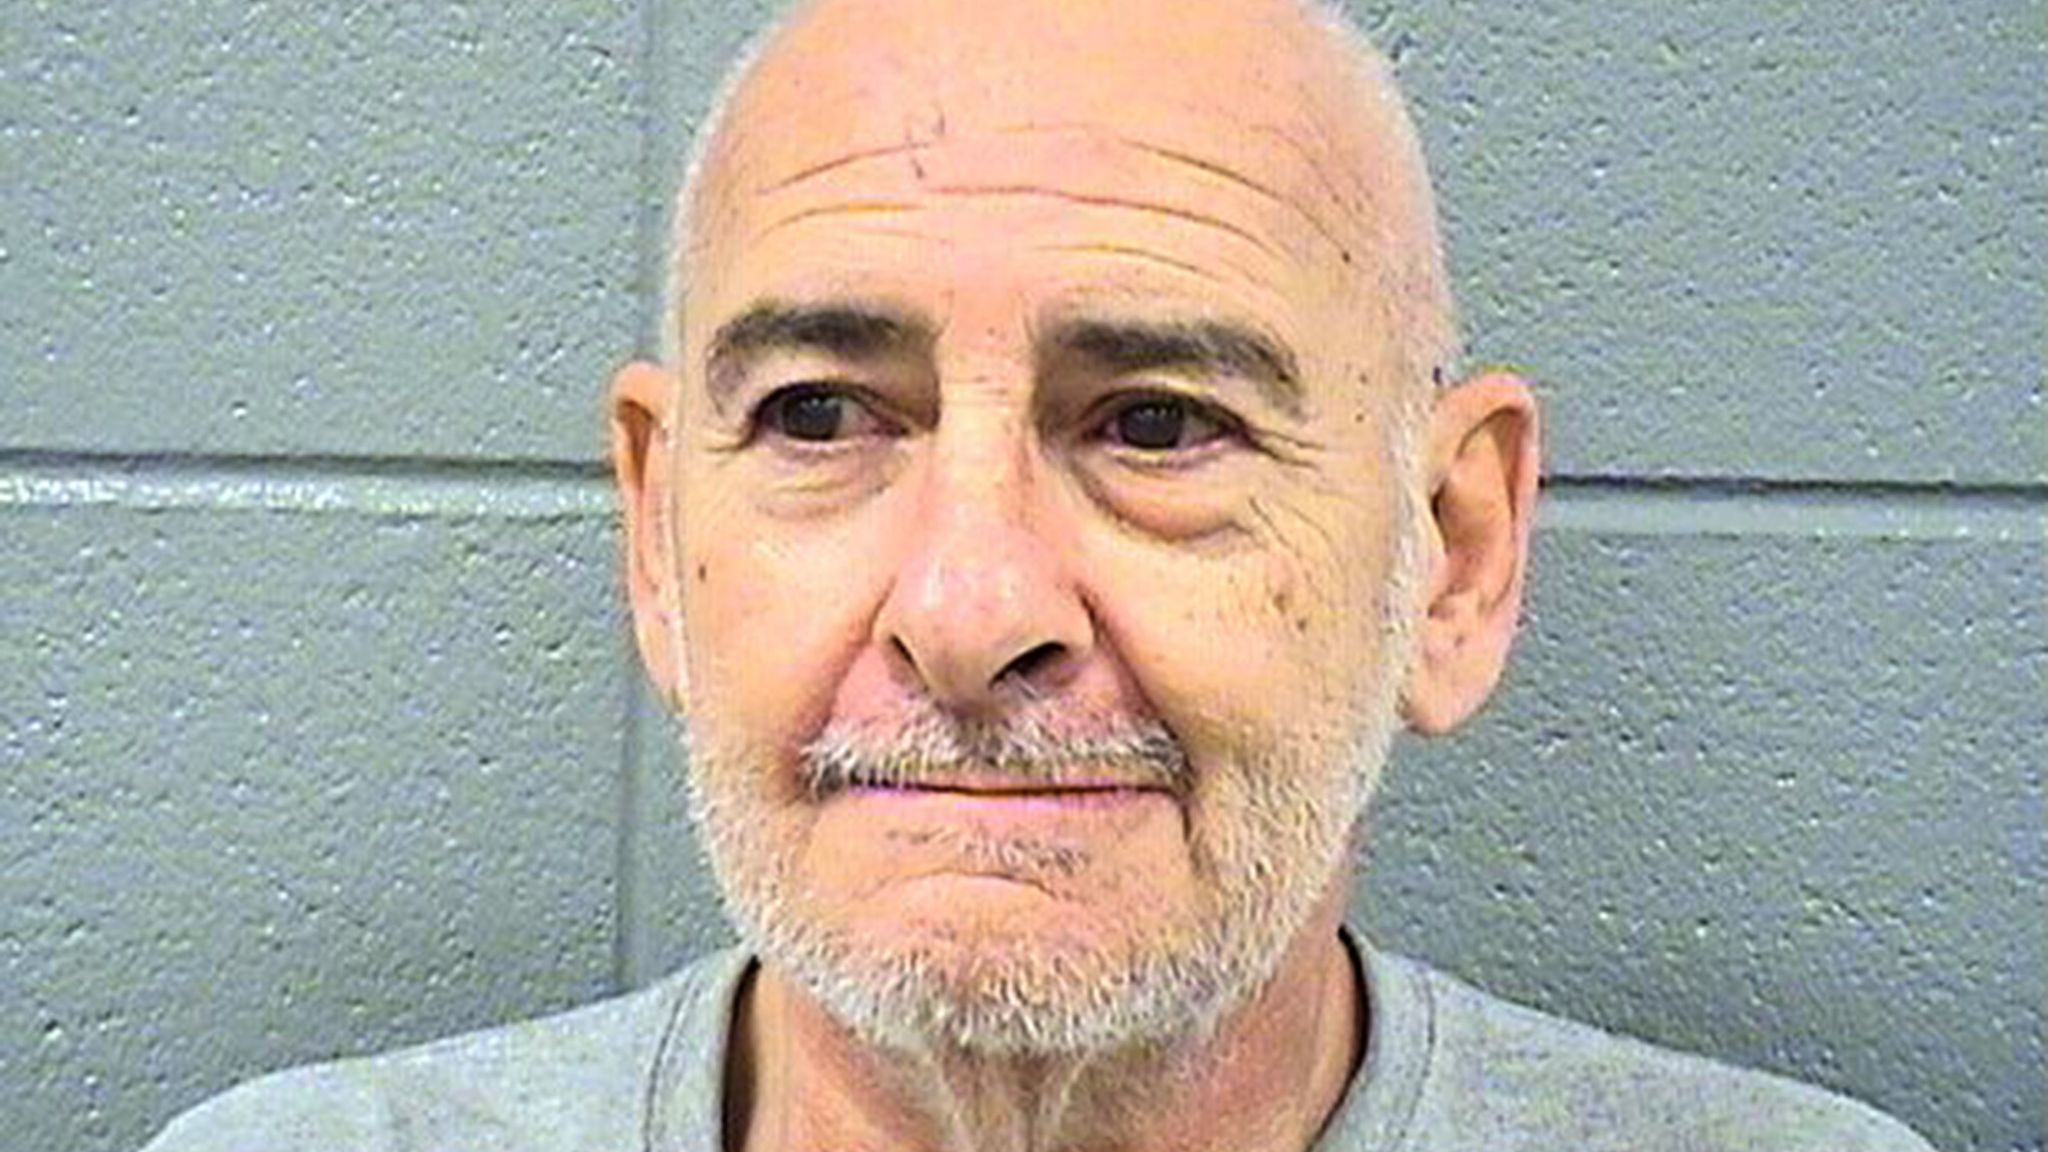 Murder trial set to begin Monday for man in 1992 death of 15-year-old Skokie boy who was found strangled in forest preserve